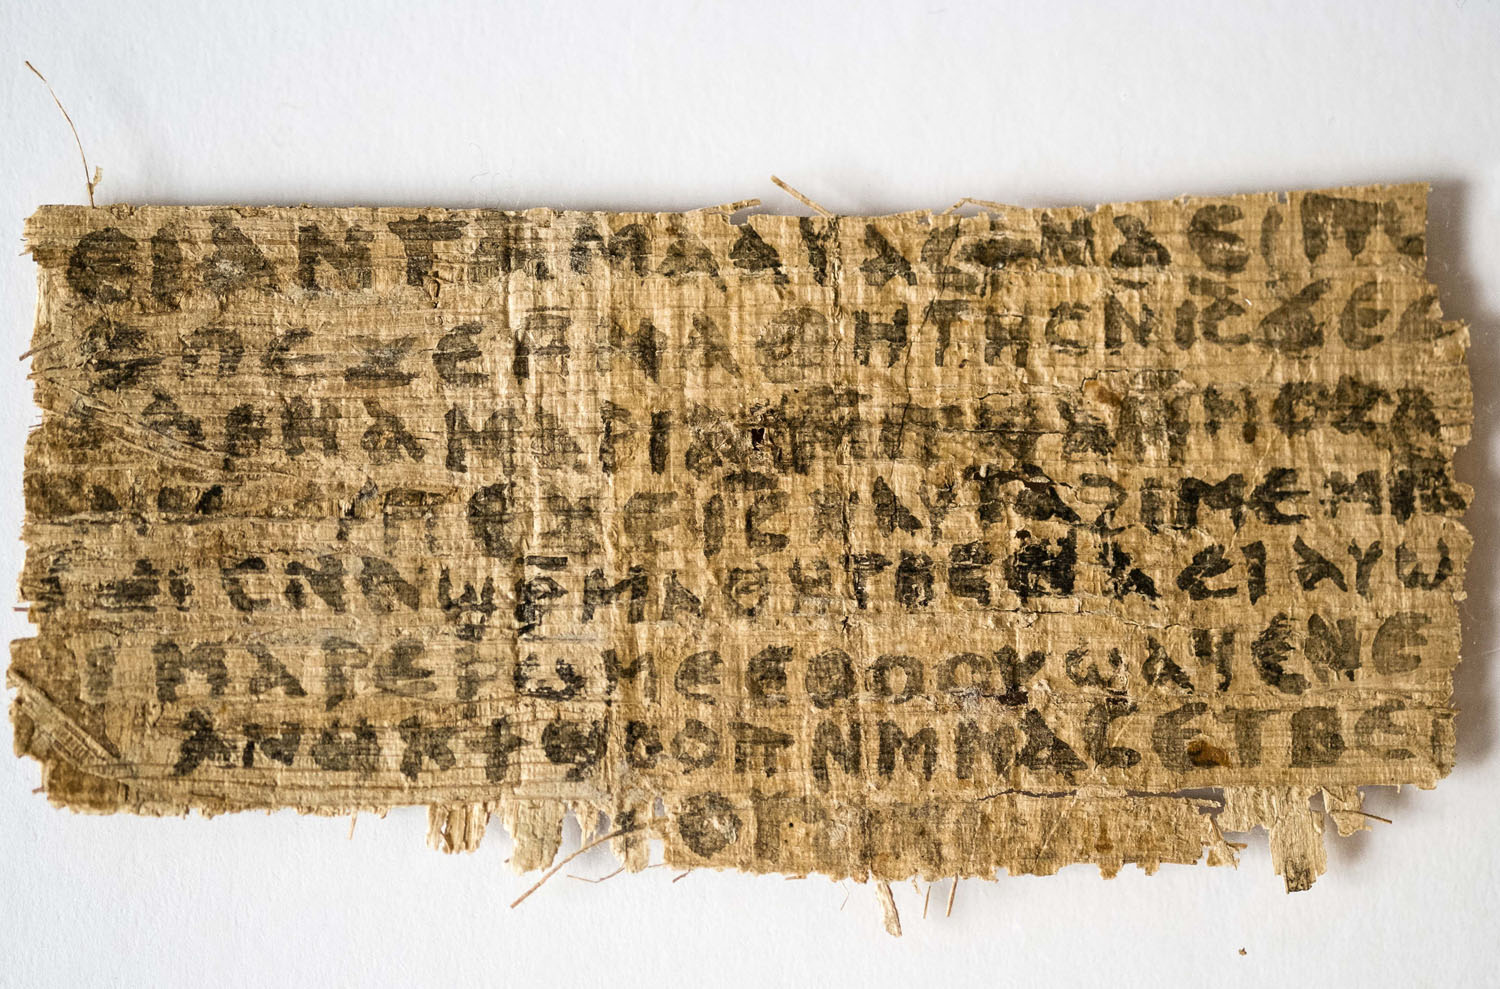 This Sept. 5, 2012 photo released by Harvard University shows a fourth century fragment of papyrus that divinity professor Karen L. King says is the only existing ancient text that quotes Jesus explicitly referring to having a wife.